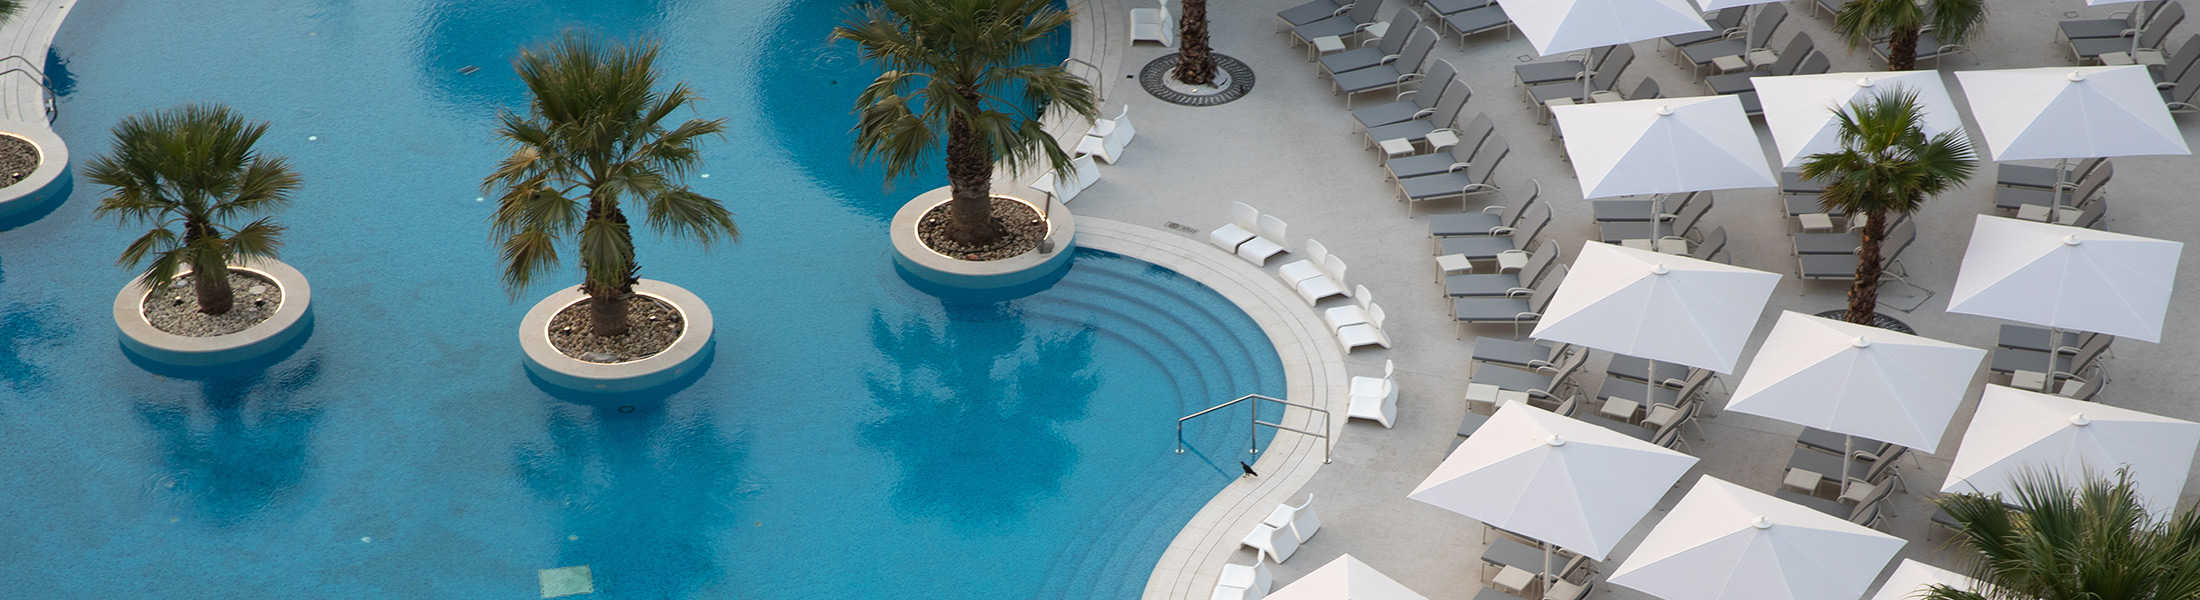 Aerial view of the leisure pool at Jumeirah Beach Hotel